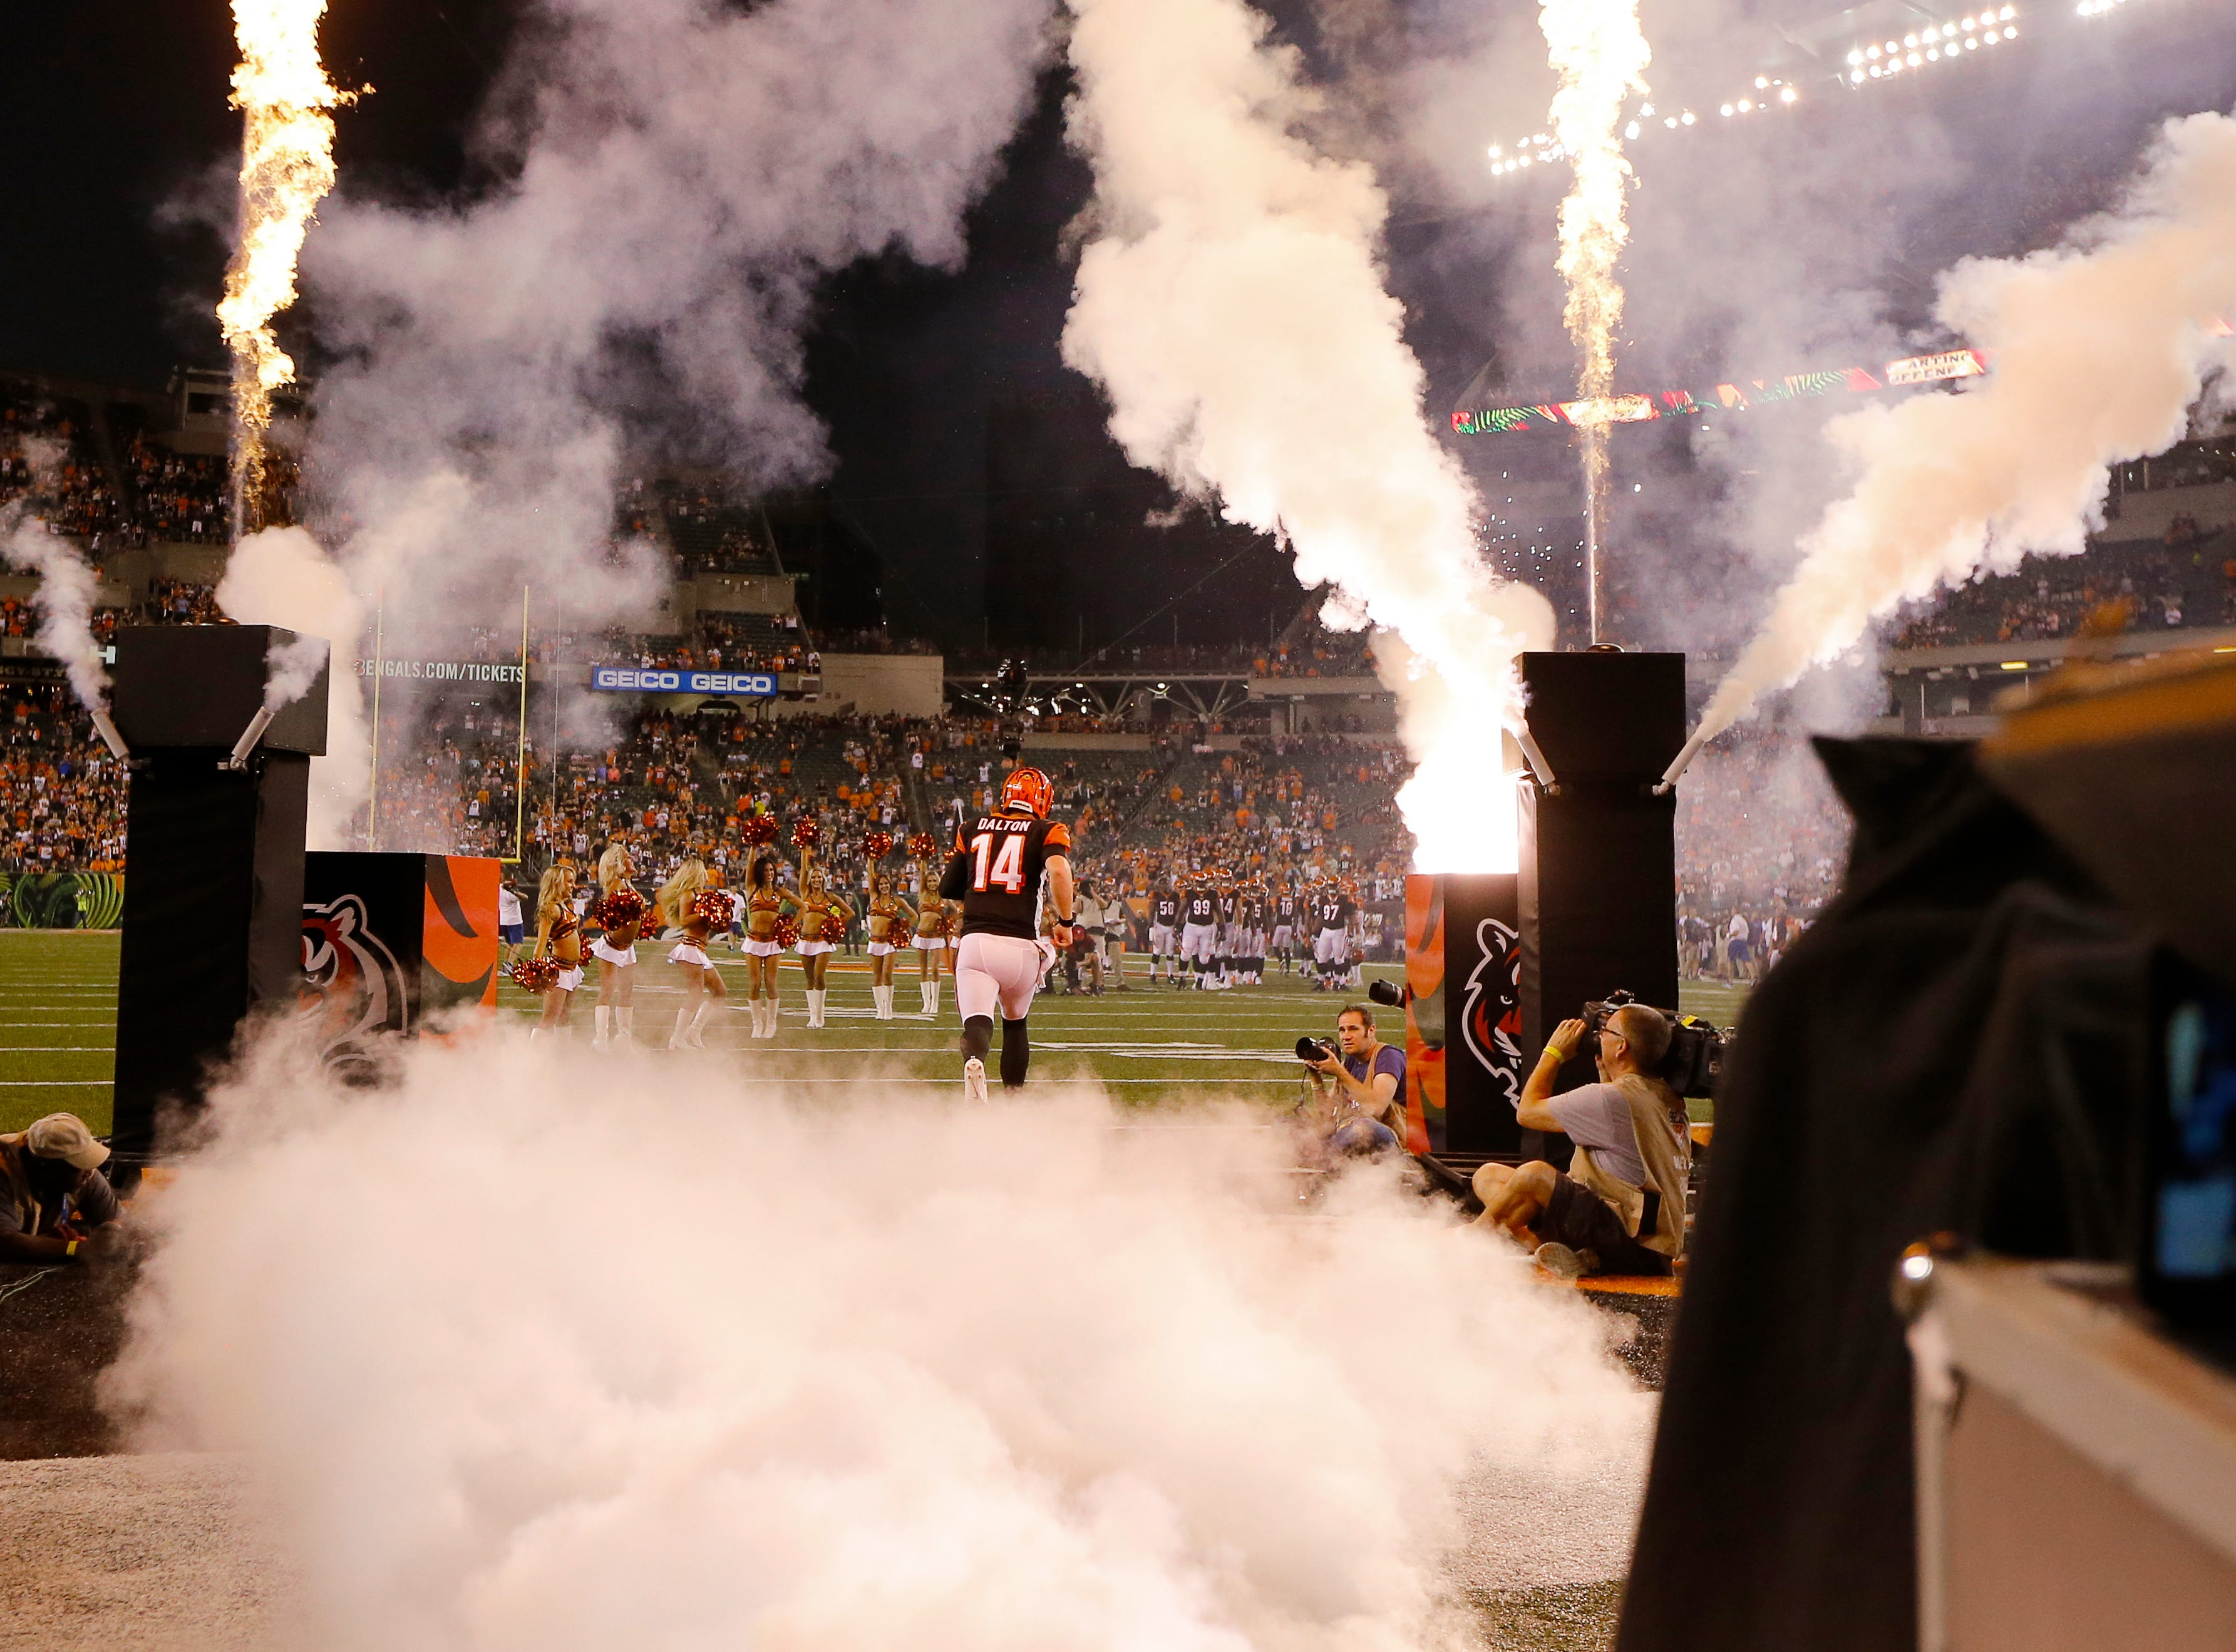 Cincinnati Bengals quarterback Andy Dalton (14) takes the field as he's introduced before the first quarter of the NFL Week 2 game between the Cincinnati Bengals and the Baltimore Ravens at Paul Brown Stadium in downtown Cincinnati on Thursday, Sept. 13, 2018. The Bengals led 28-14 at halftime.